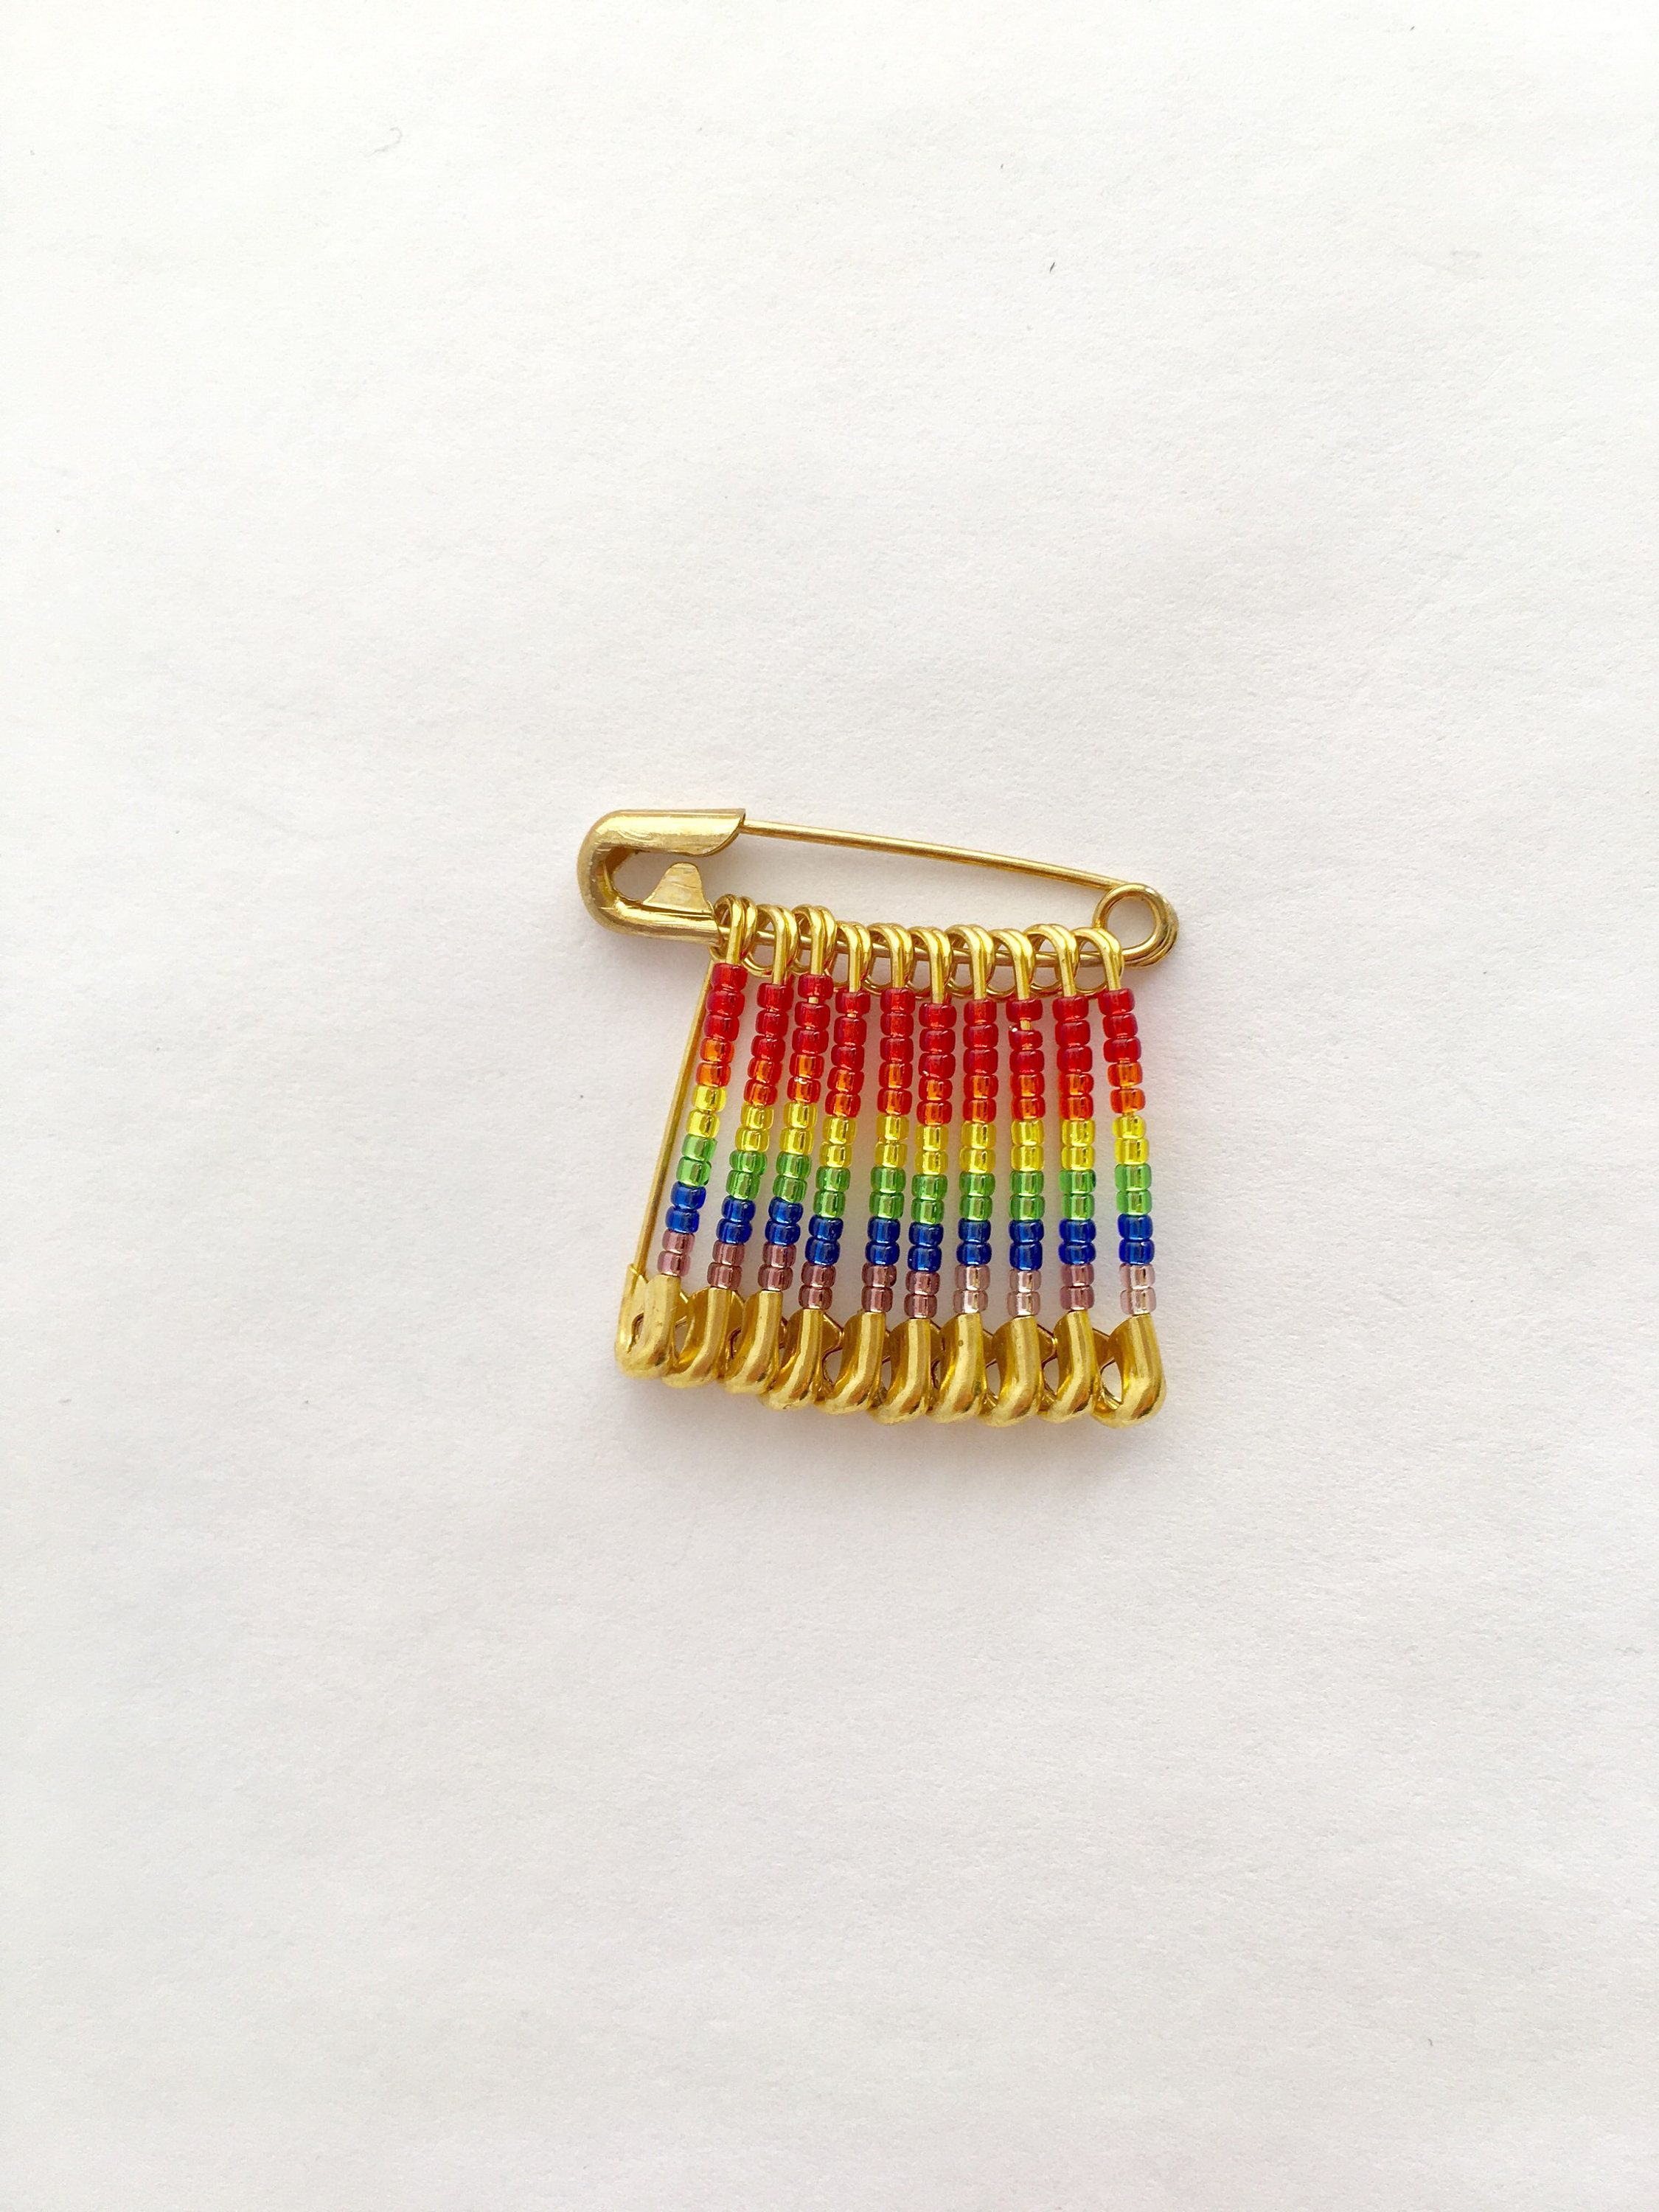 6f1f175f8 Pride Flag Pin Handmade Holiday Gift Stocking Stuffer Lapel Pin LGBT Beaded  Flag Gay Flag Pin Birthday Gift Brooch Beaded Flag Pin by FlagPinsbyAnnette  on ...